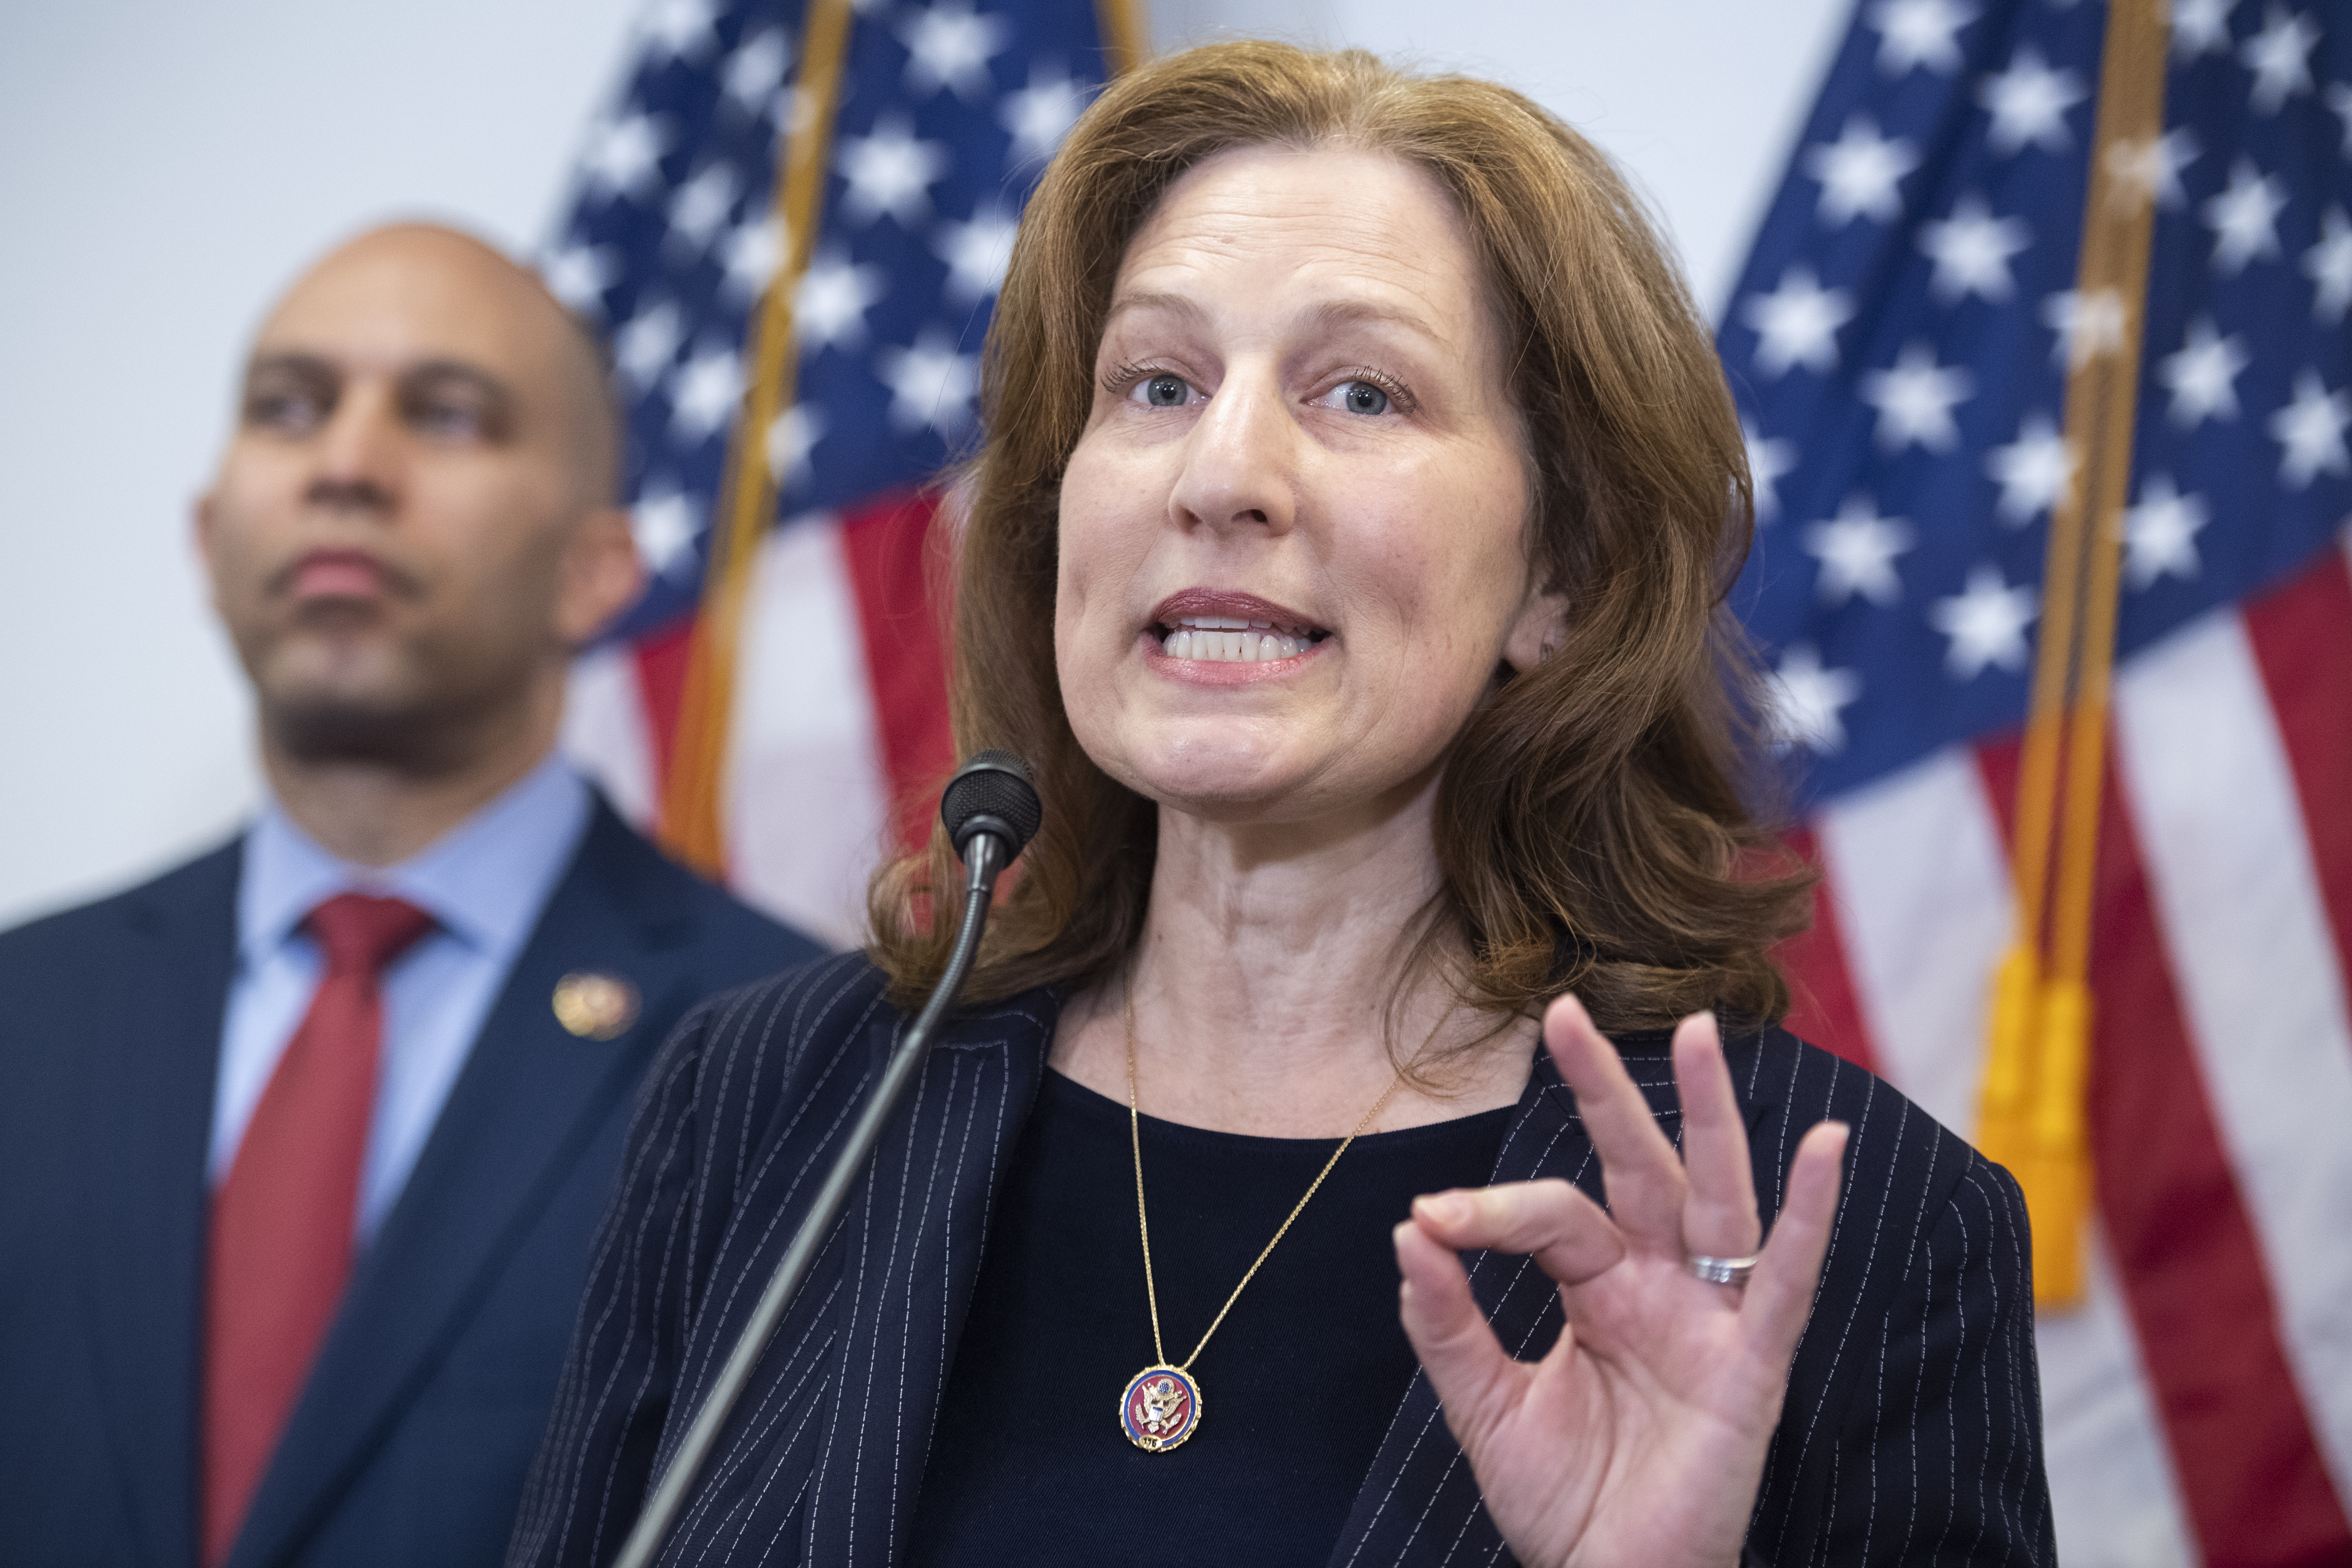 Kim Schrier during a news conference on March 3.